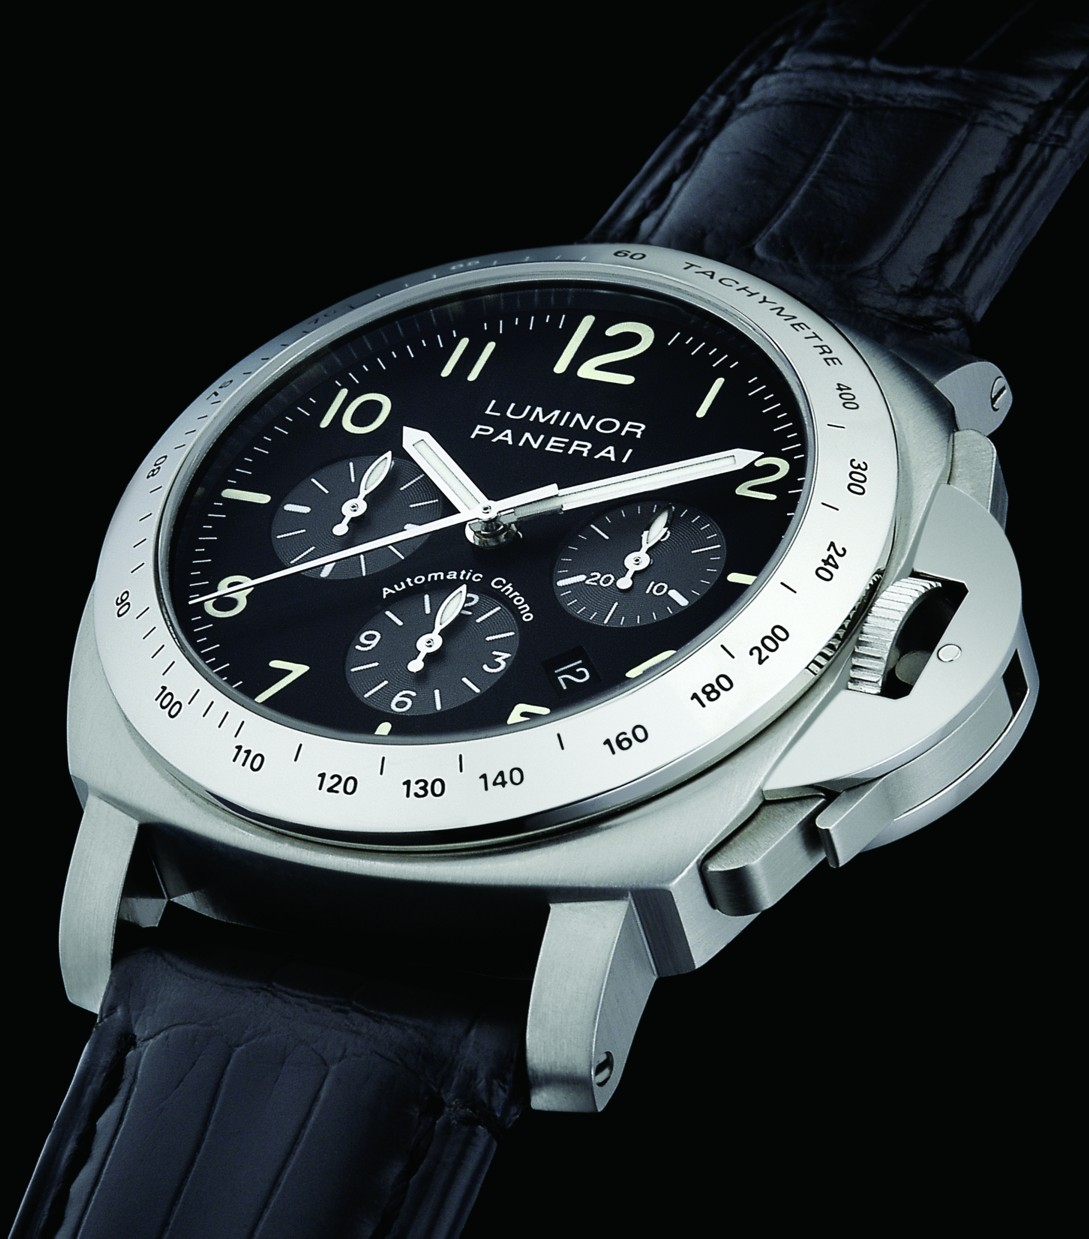 Classic Panerai Luminor Chrono Watches